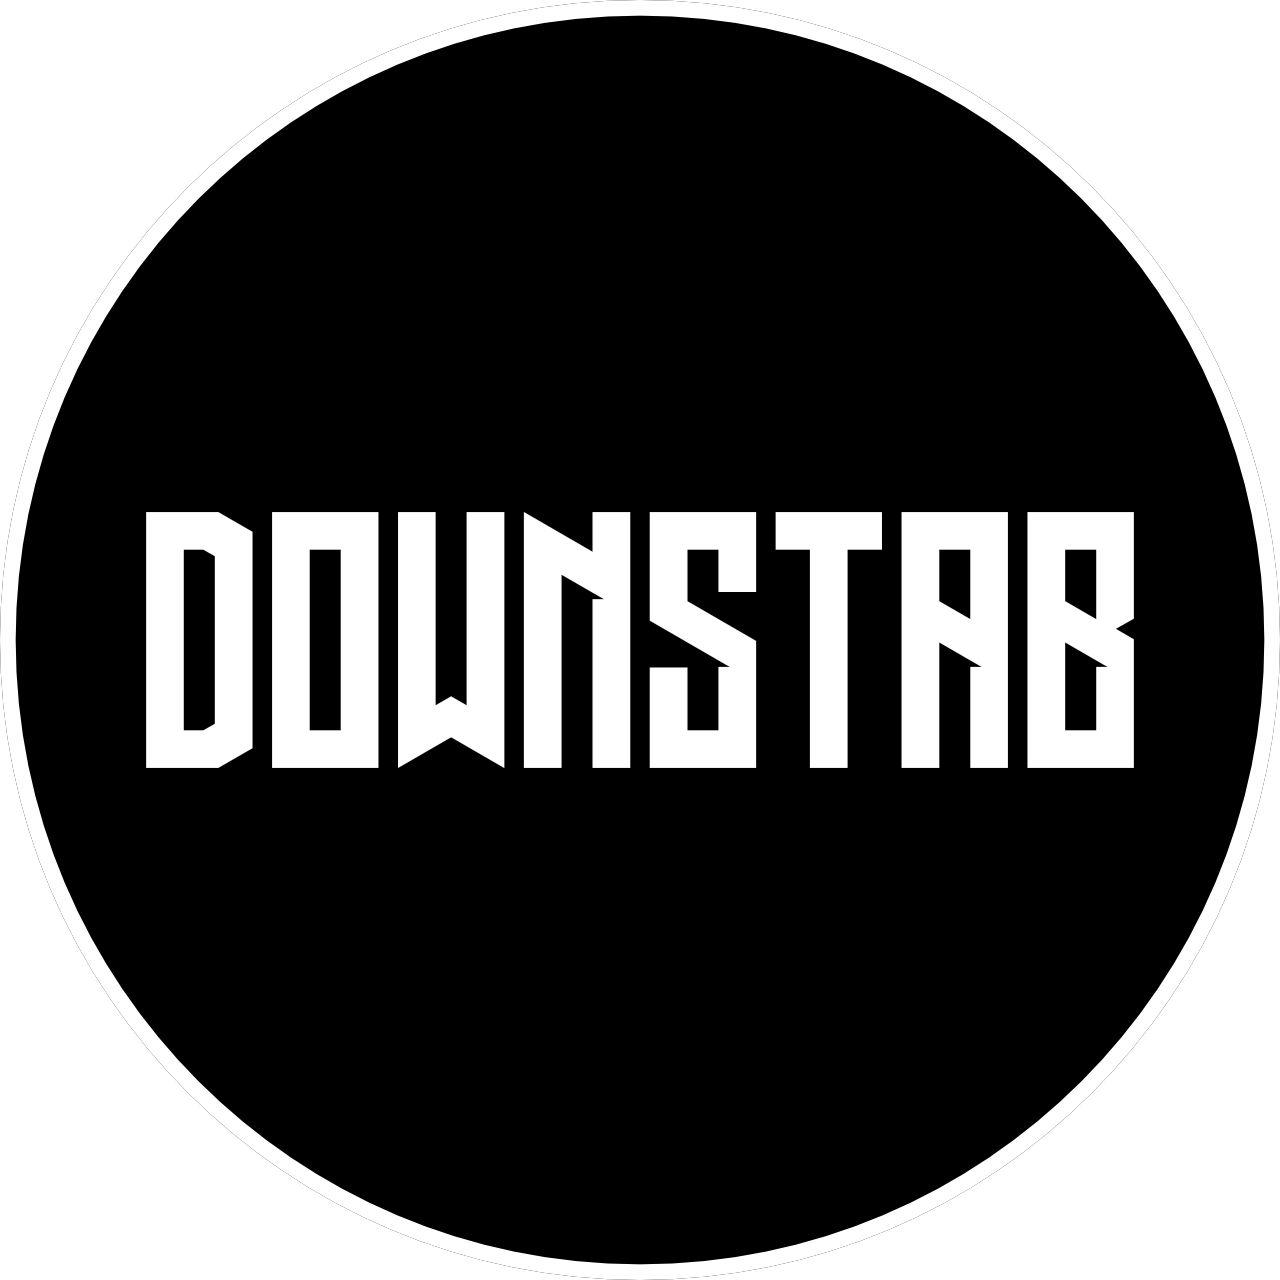 About DownStab